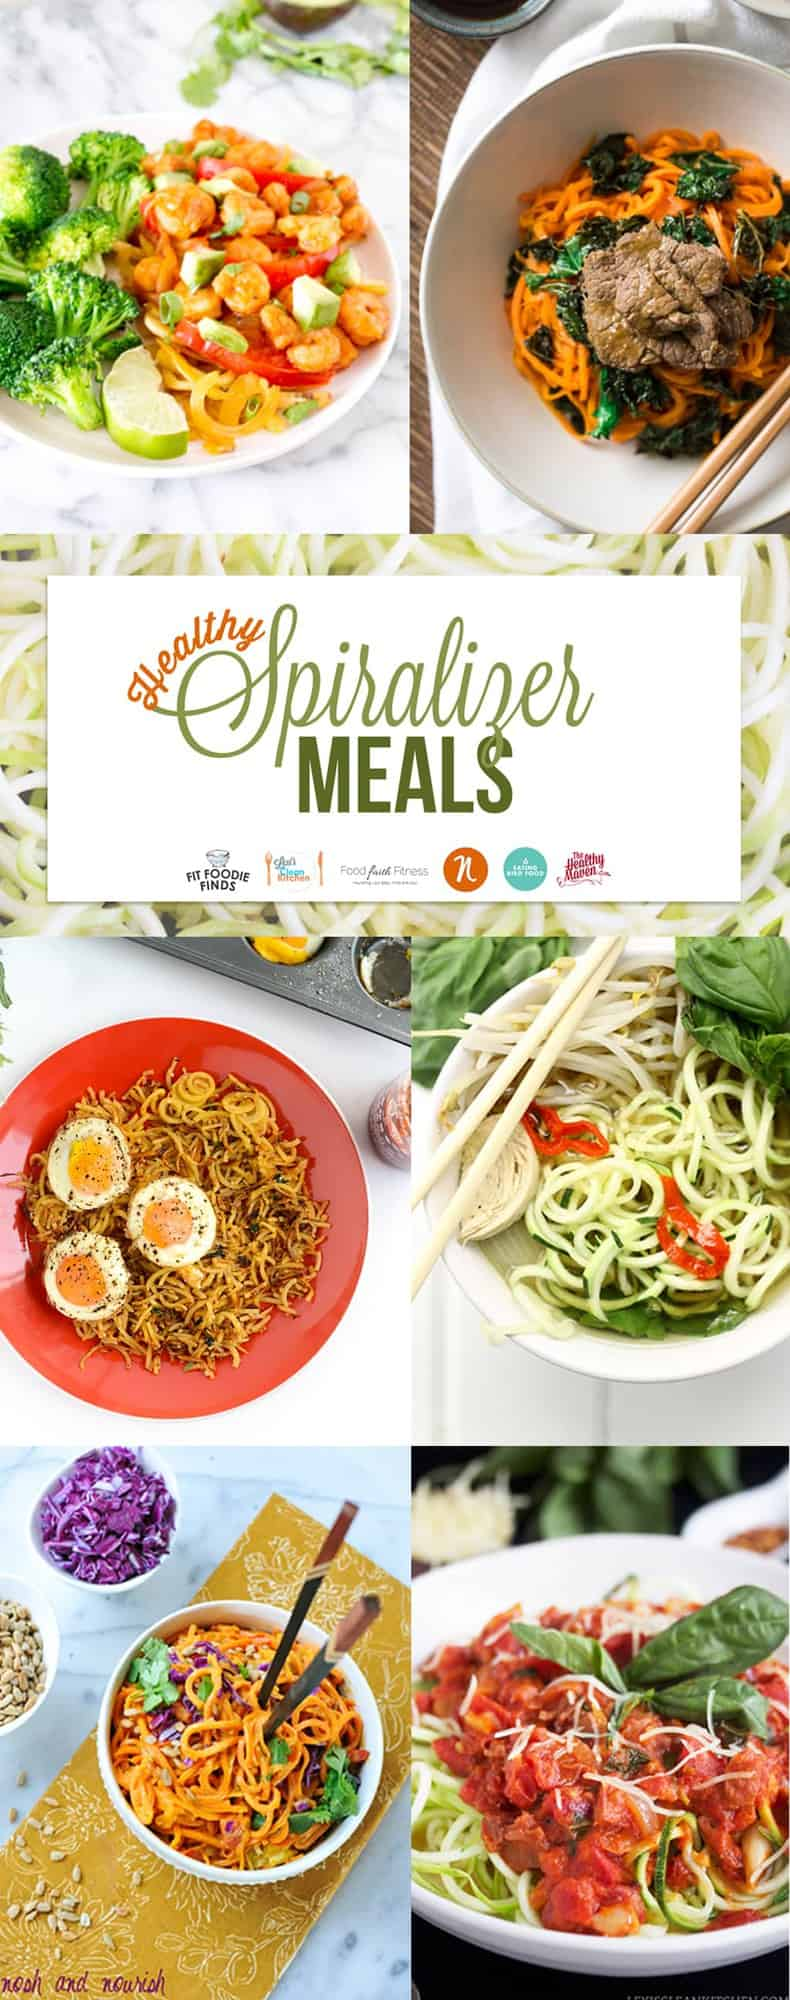 Healthy Spiralizer Meals - paleo friendly!